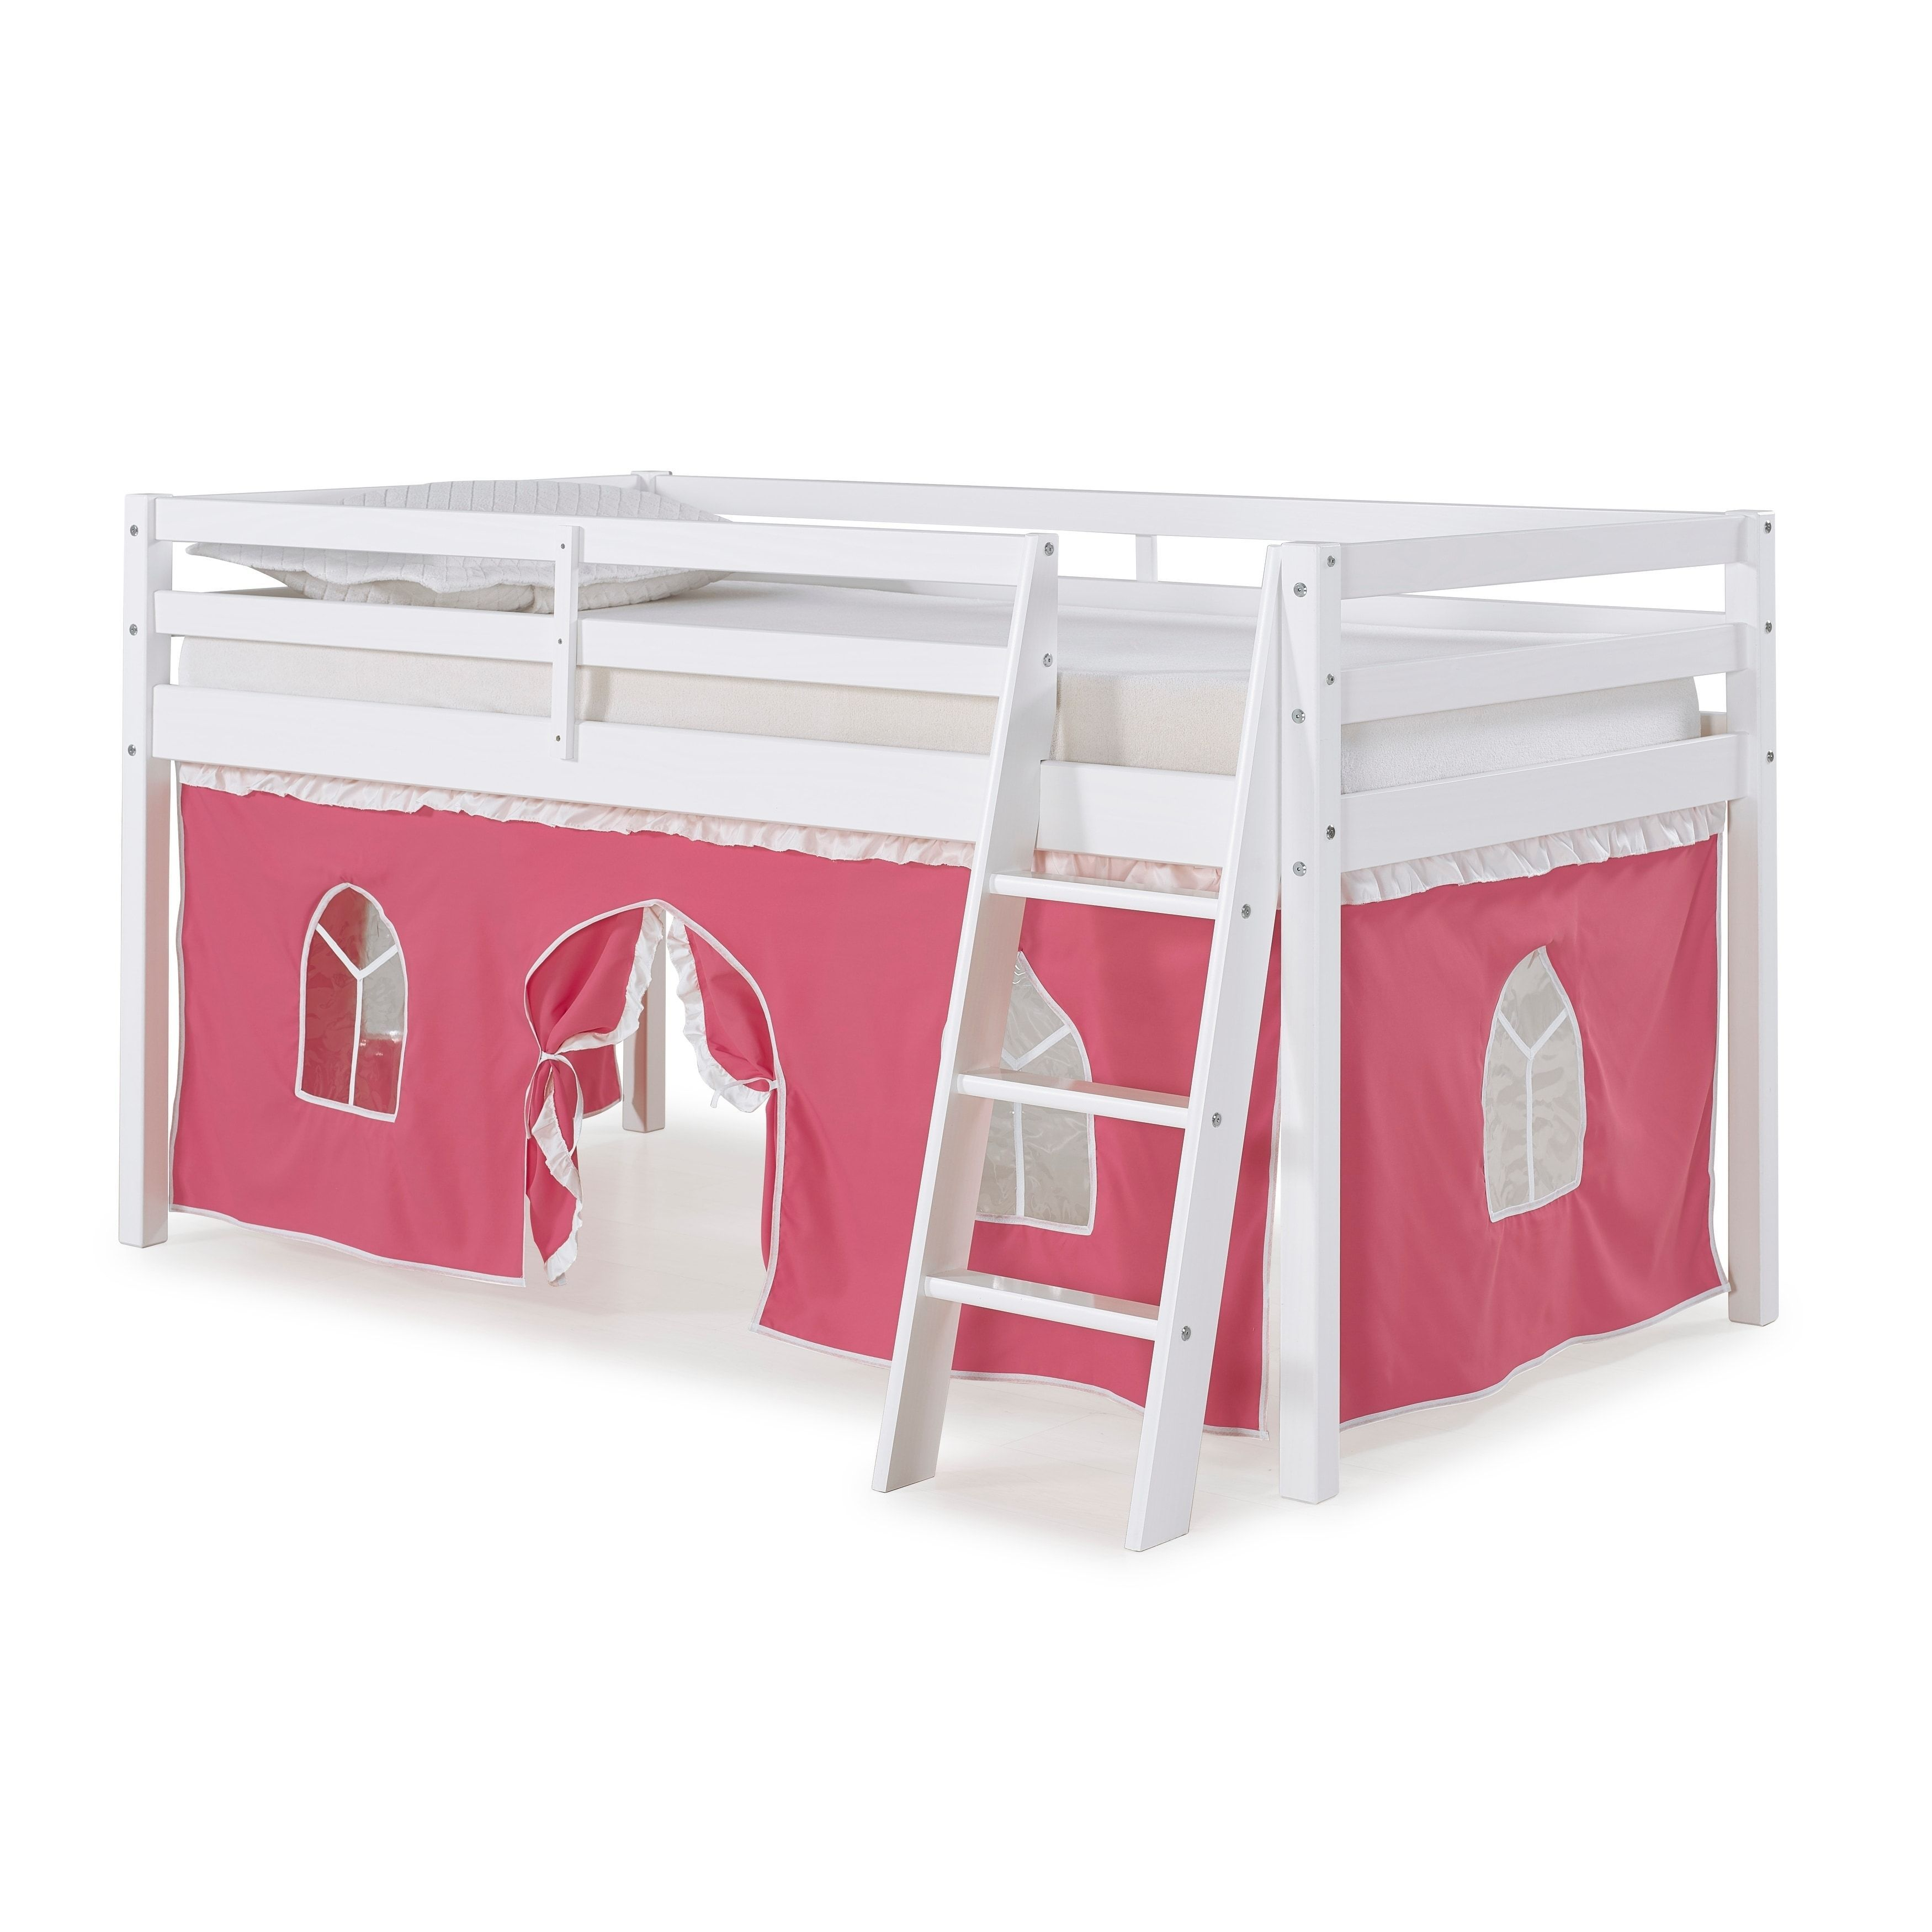 bolton furniture roxy white wood twin junior loft bed with pink and